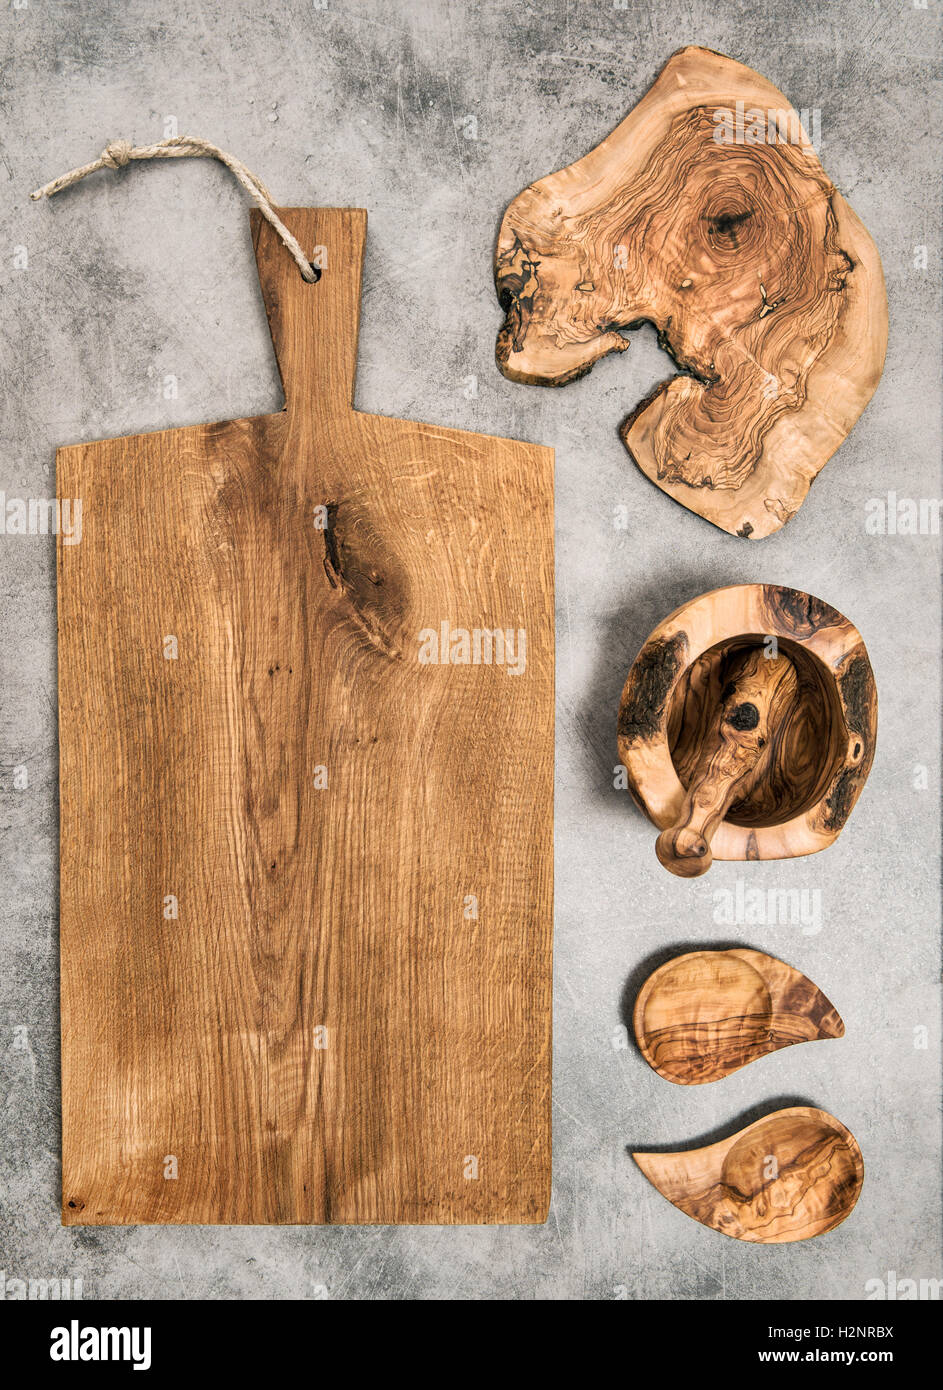 Kitchen tolls and utensils. Olive wood. Food background - Stock Image